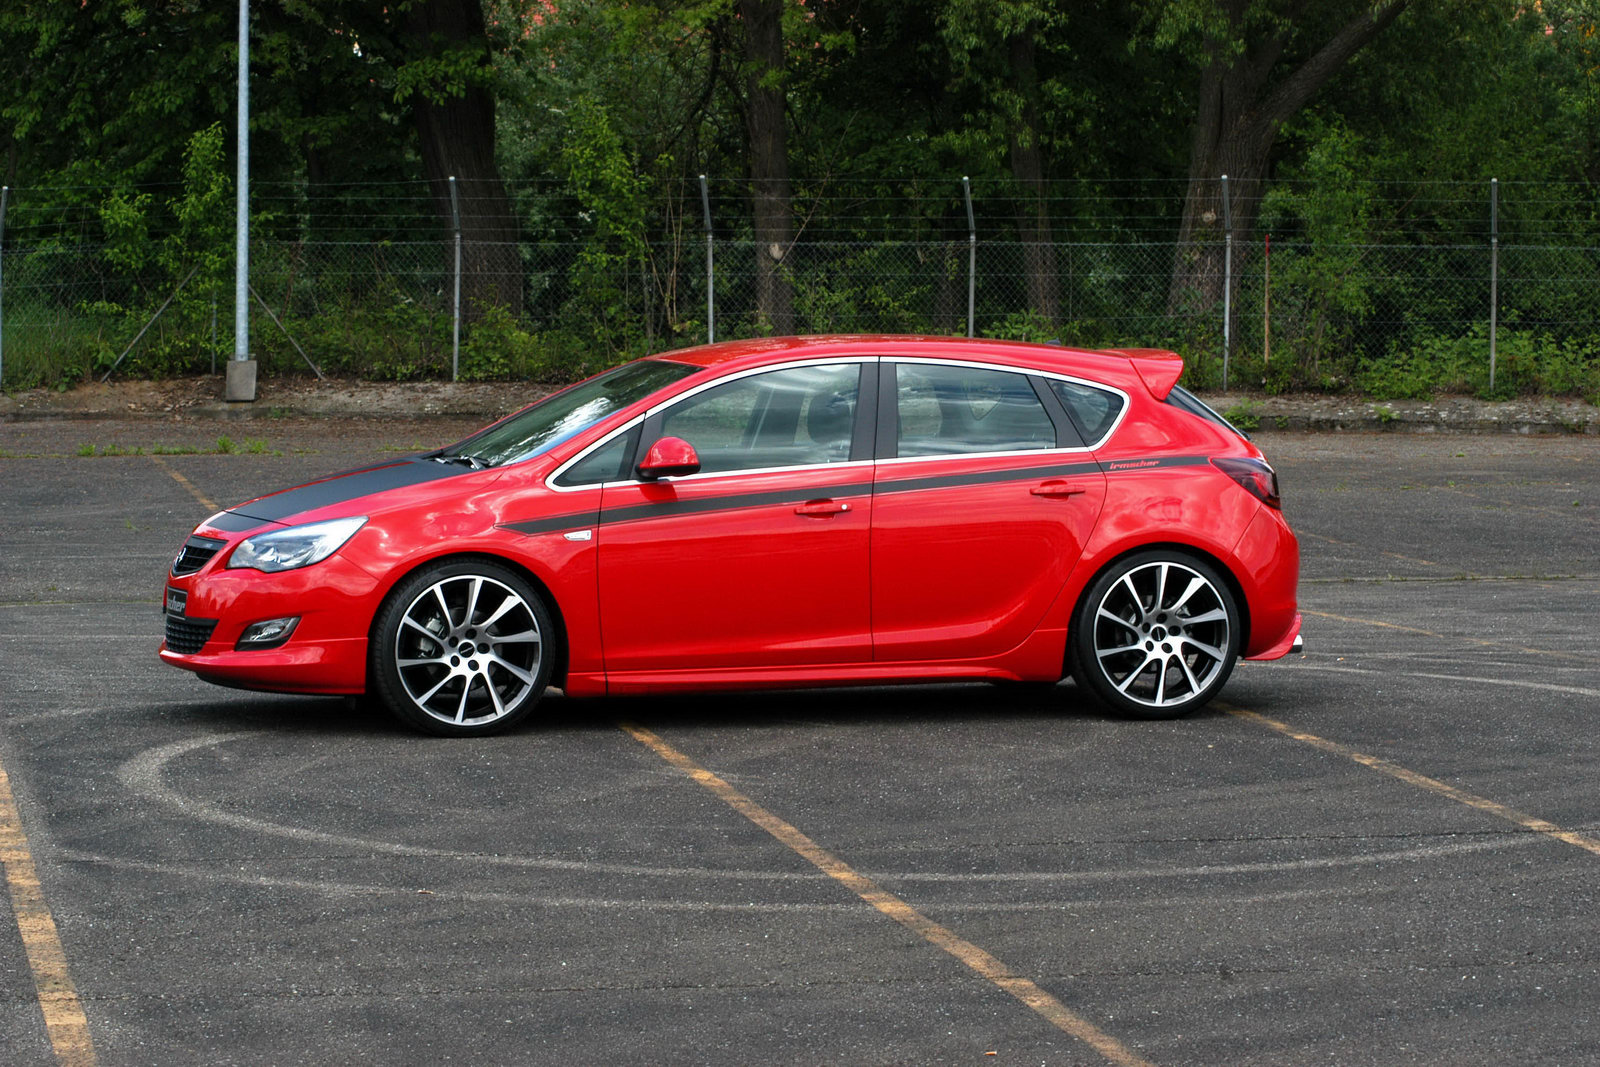 Irmscher Opel Astra I1600 With Upgraded 200HP 16 liter